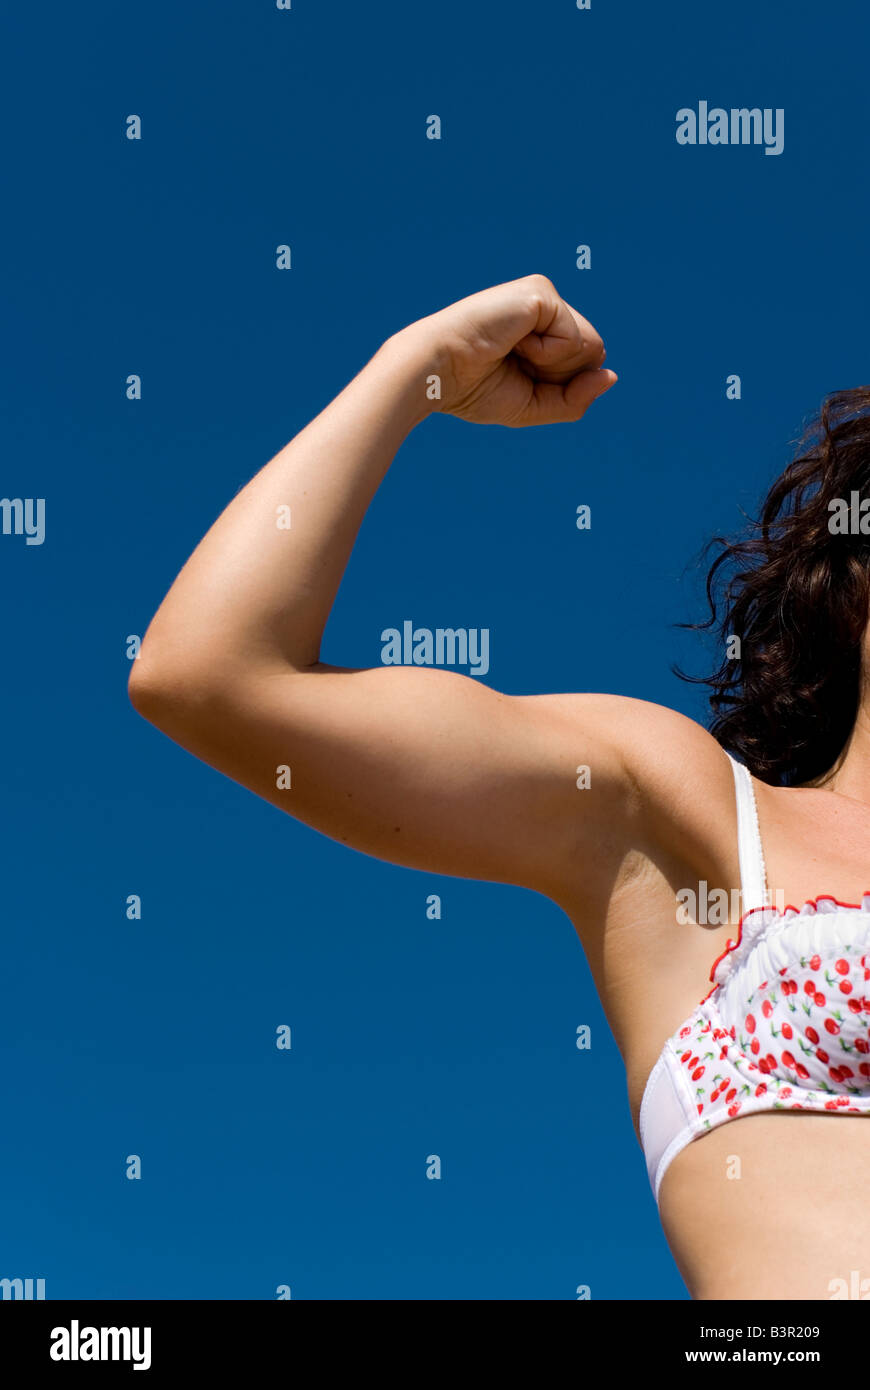 Model Released female arm flexing biceps against a clear blue sky wearing feminine floral bra - Stock Image